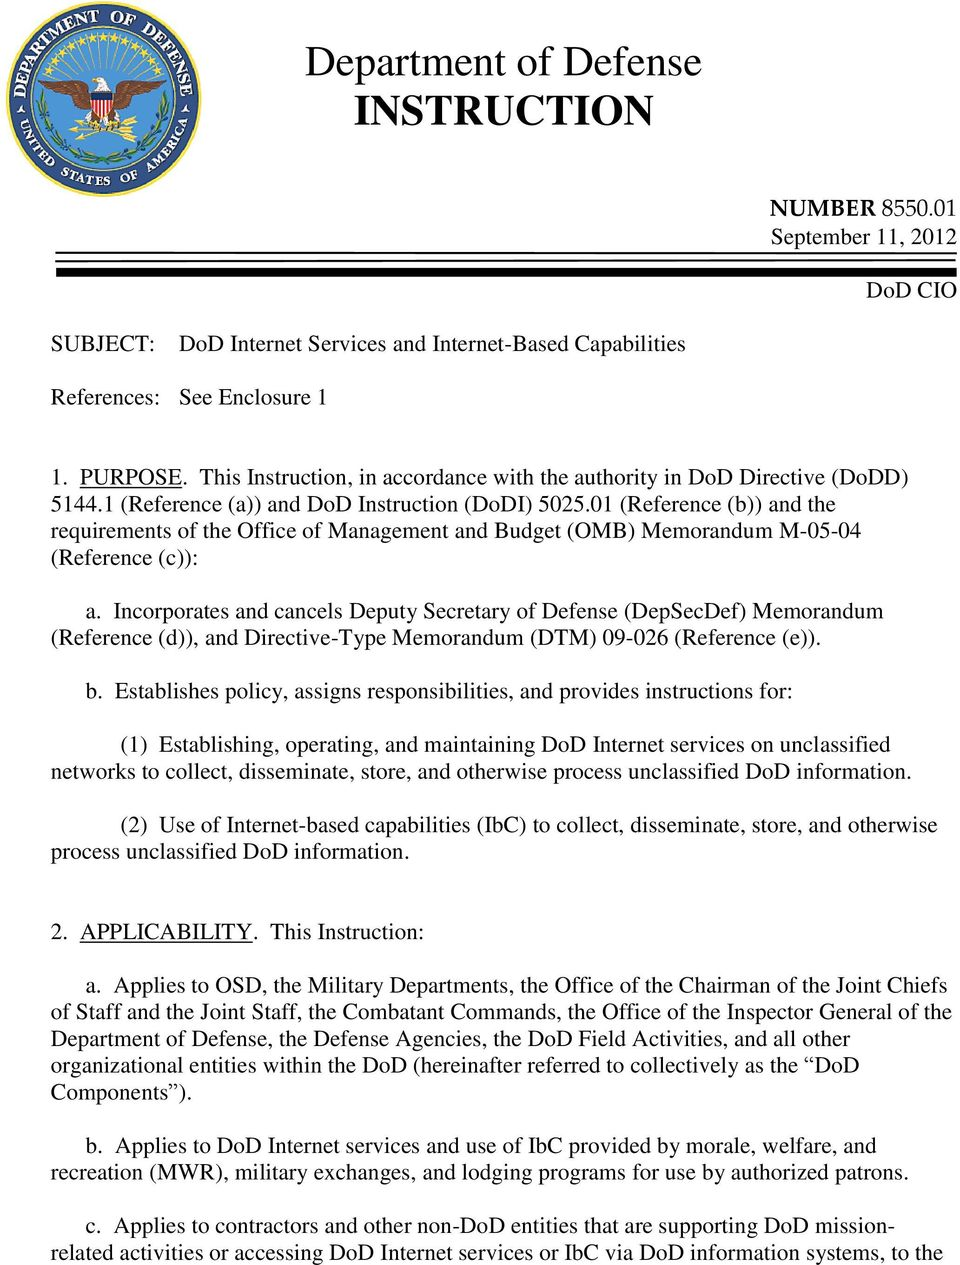 01 (Reference (b)) and the requirements of the Office of Management and Budget (OMB) Memorandum M-05-04 (Reference (c)): a.